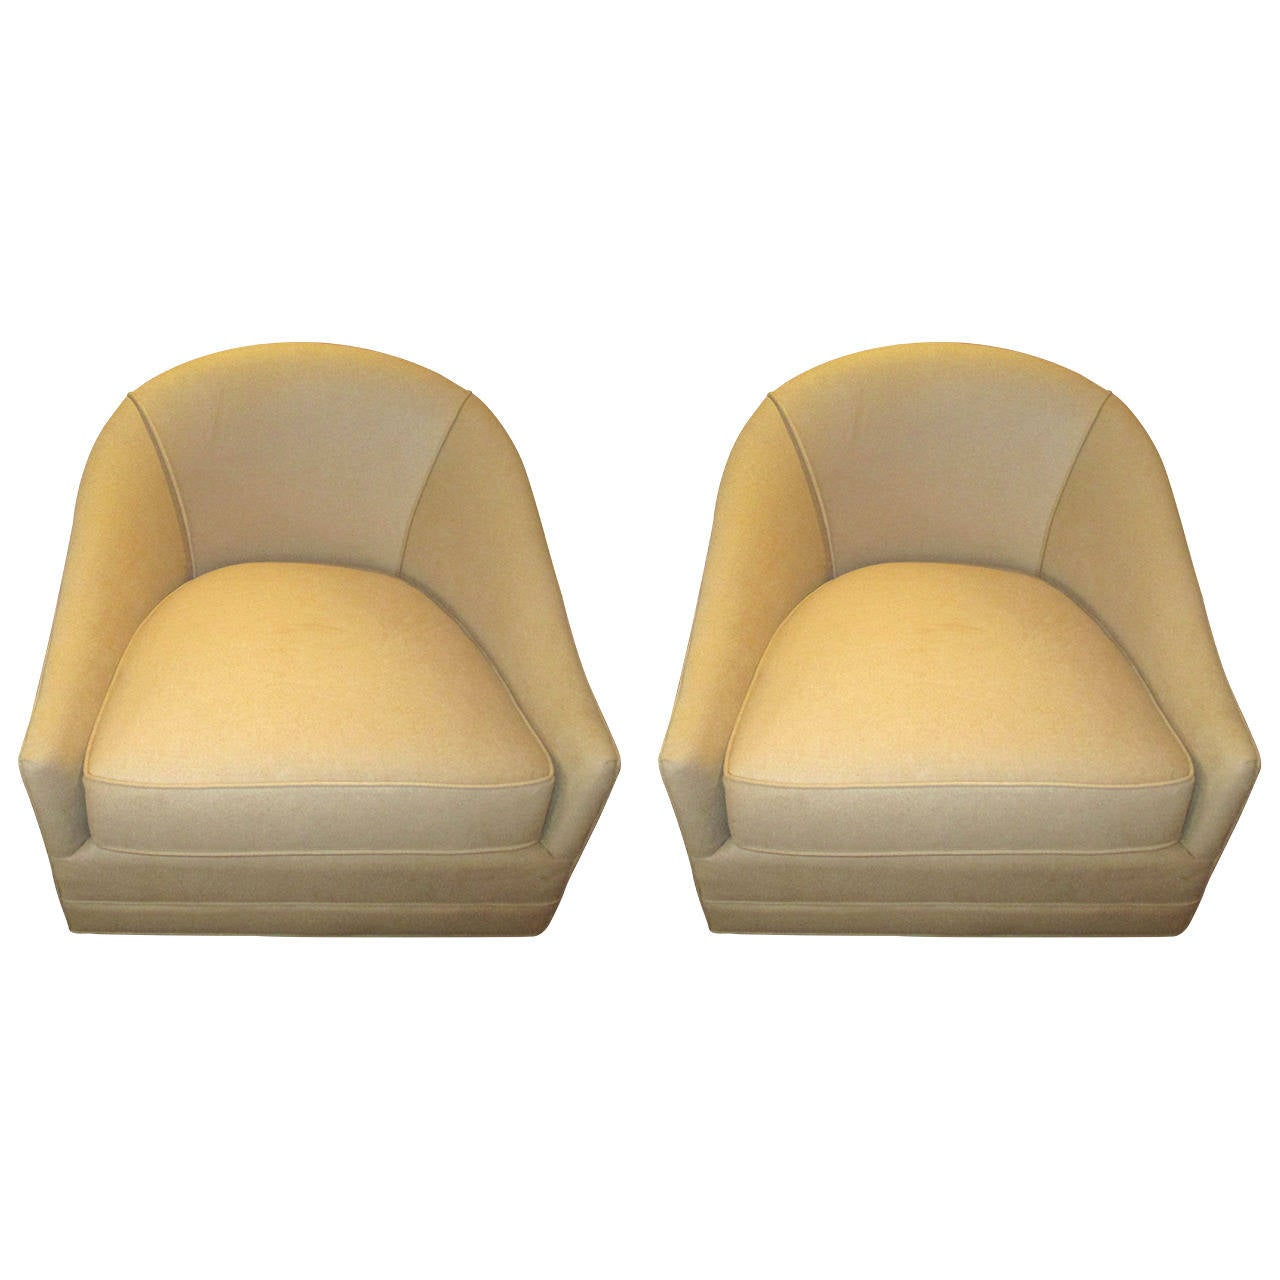 Cool Lounge Chairs Cool Pair Of Barrel Shaped Swivel Lounge Chairs At 1stdibs